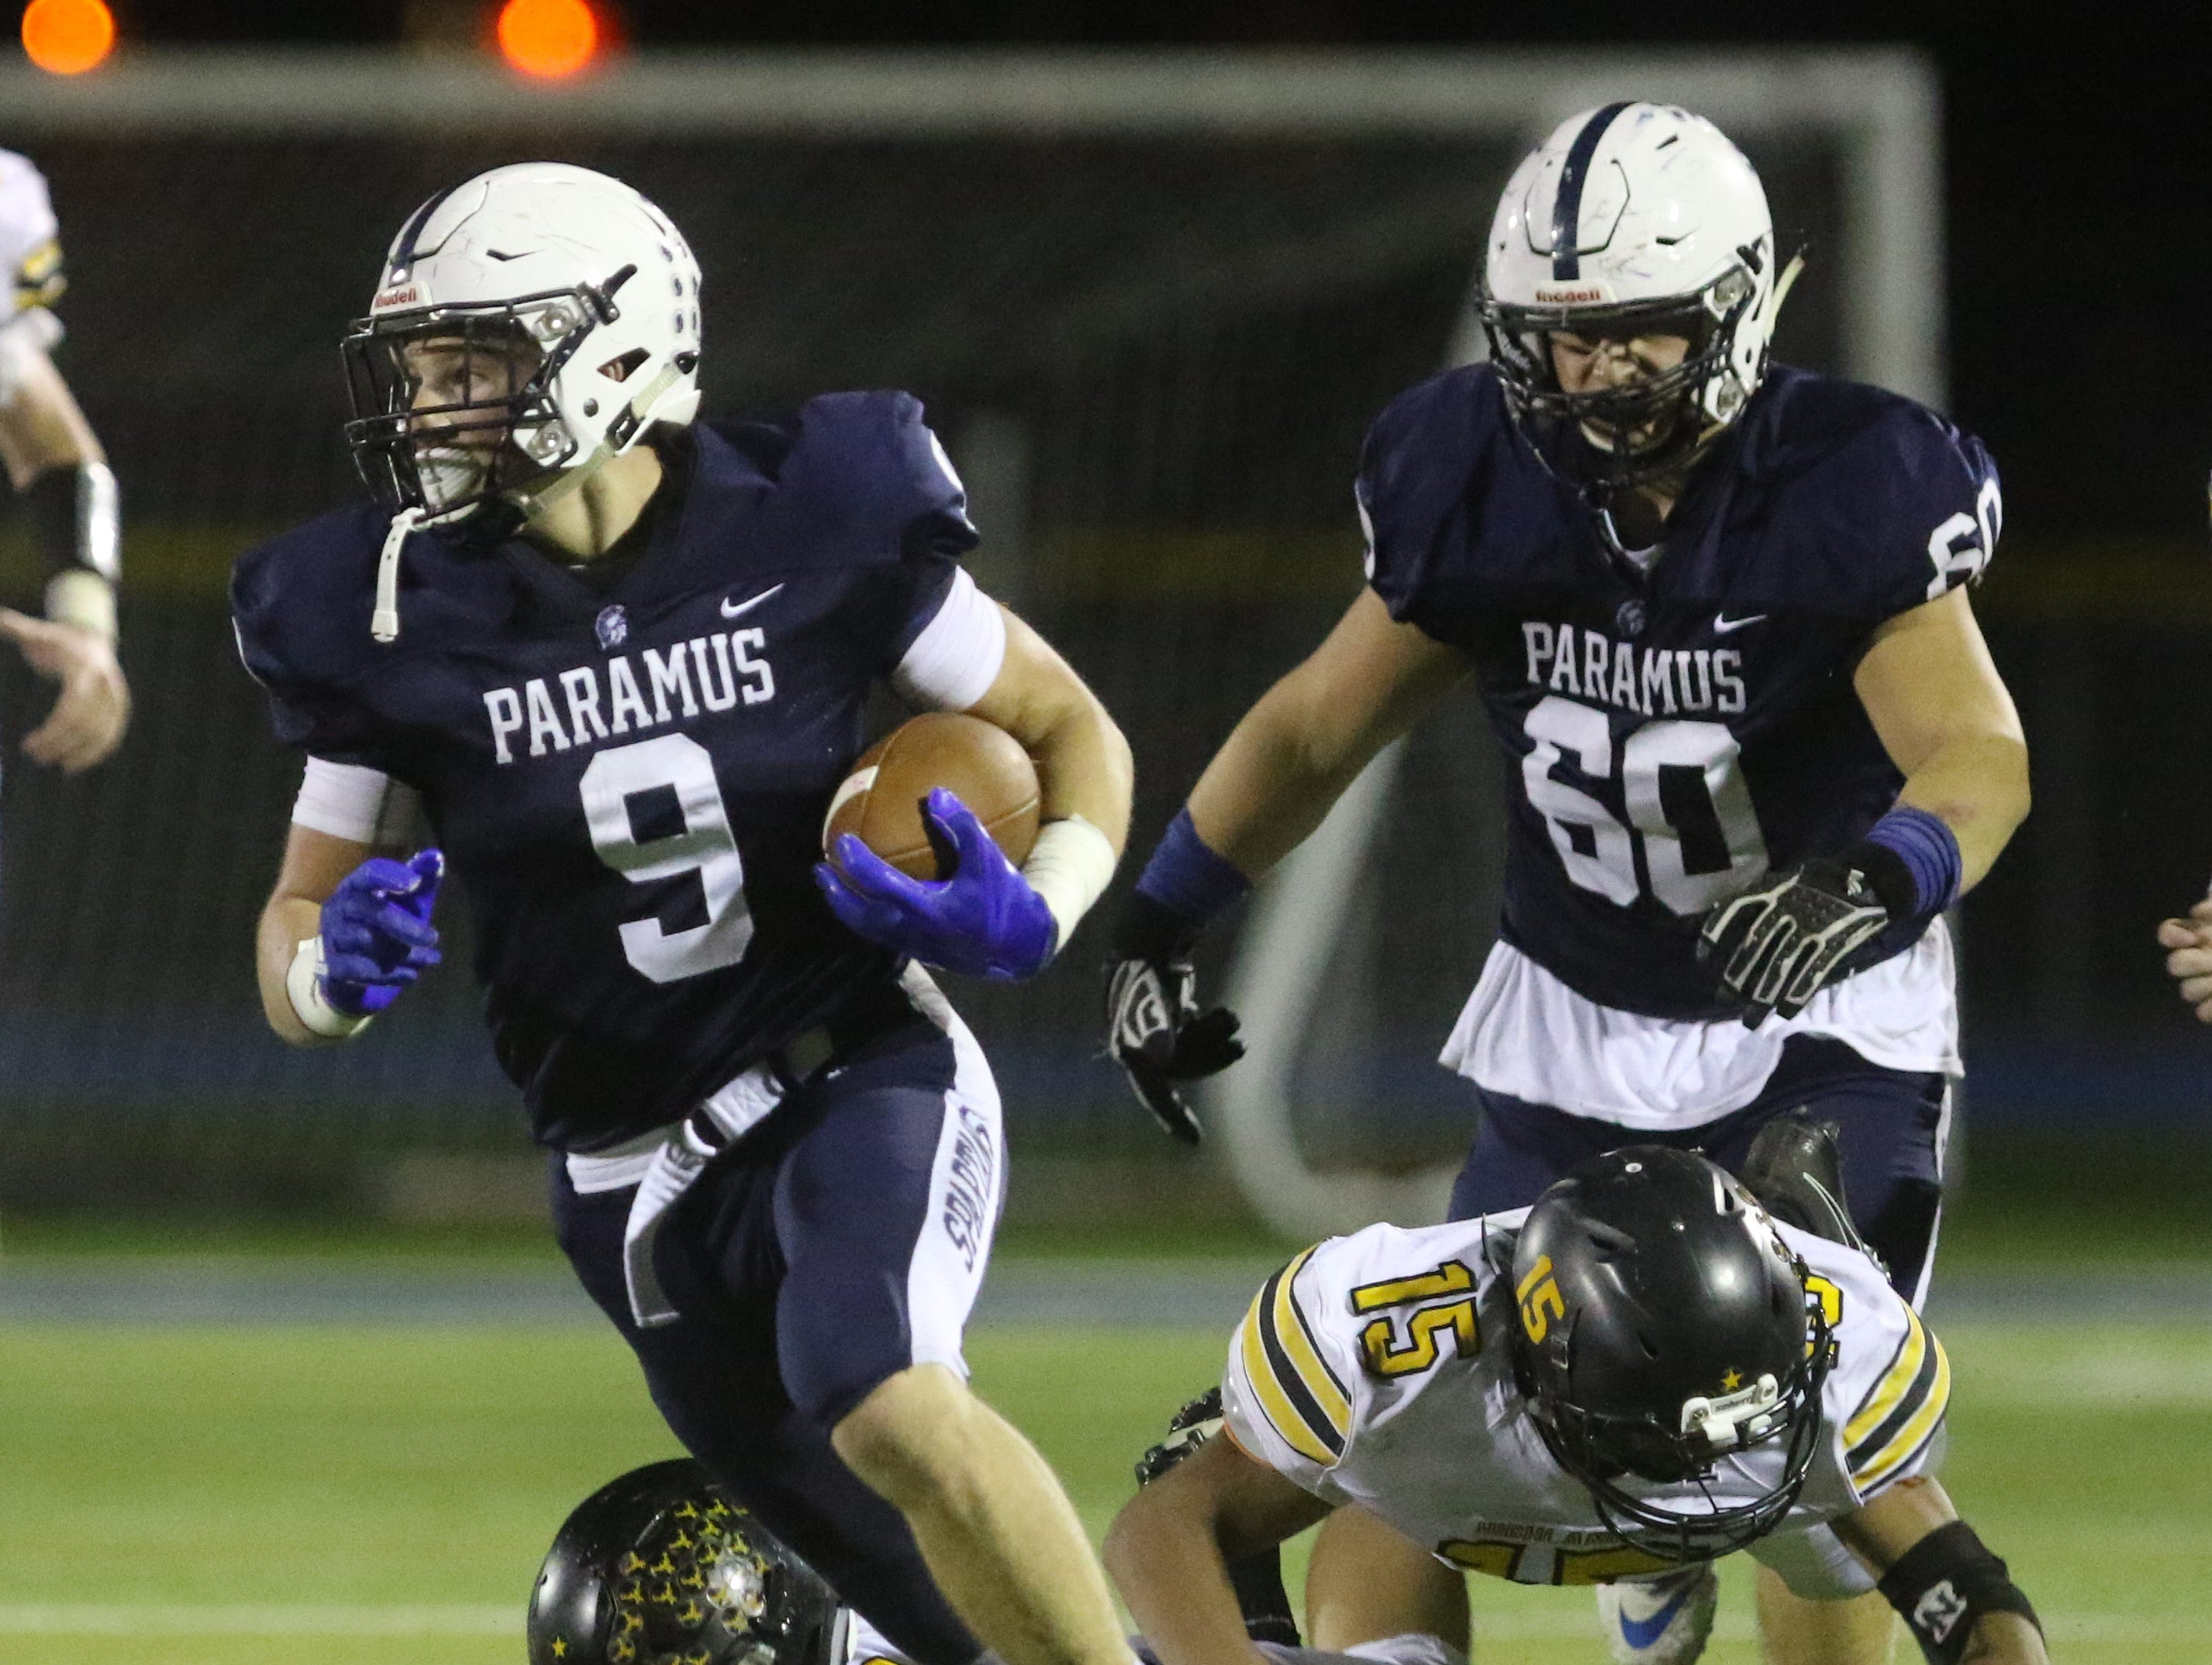 Kyle Jacob of Paramus beaks tackles on this first half run.